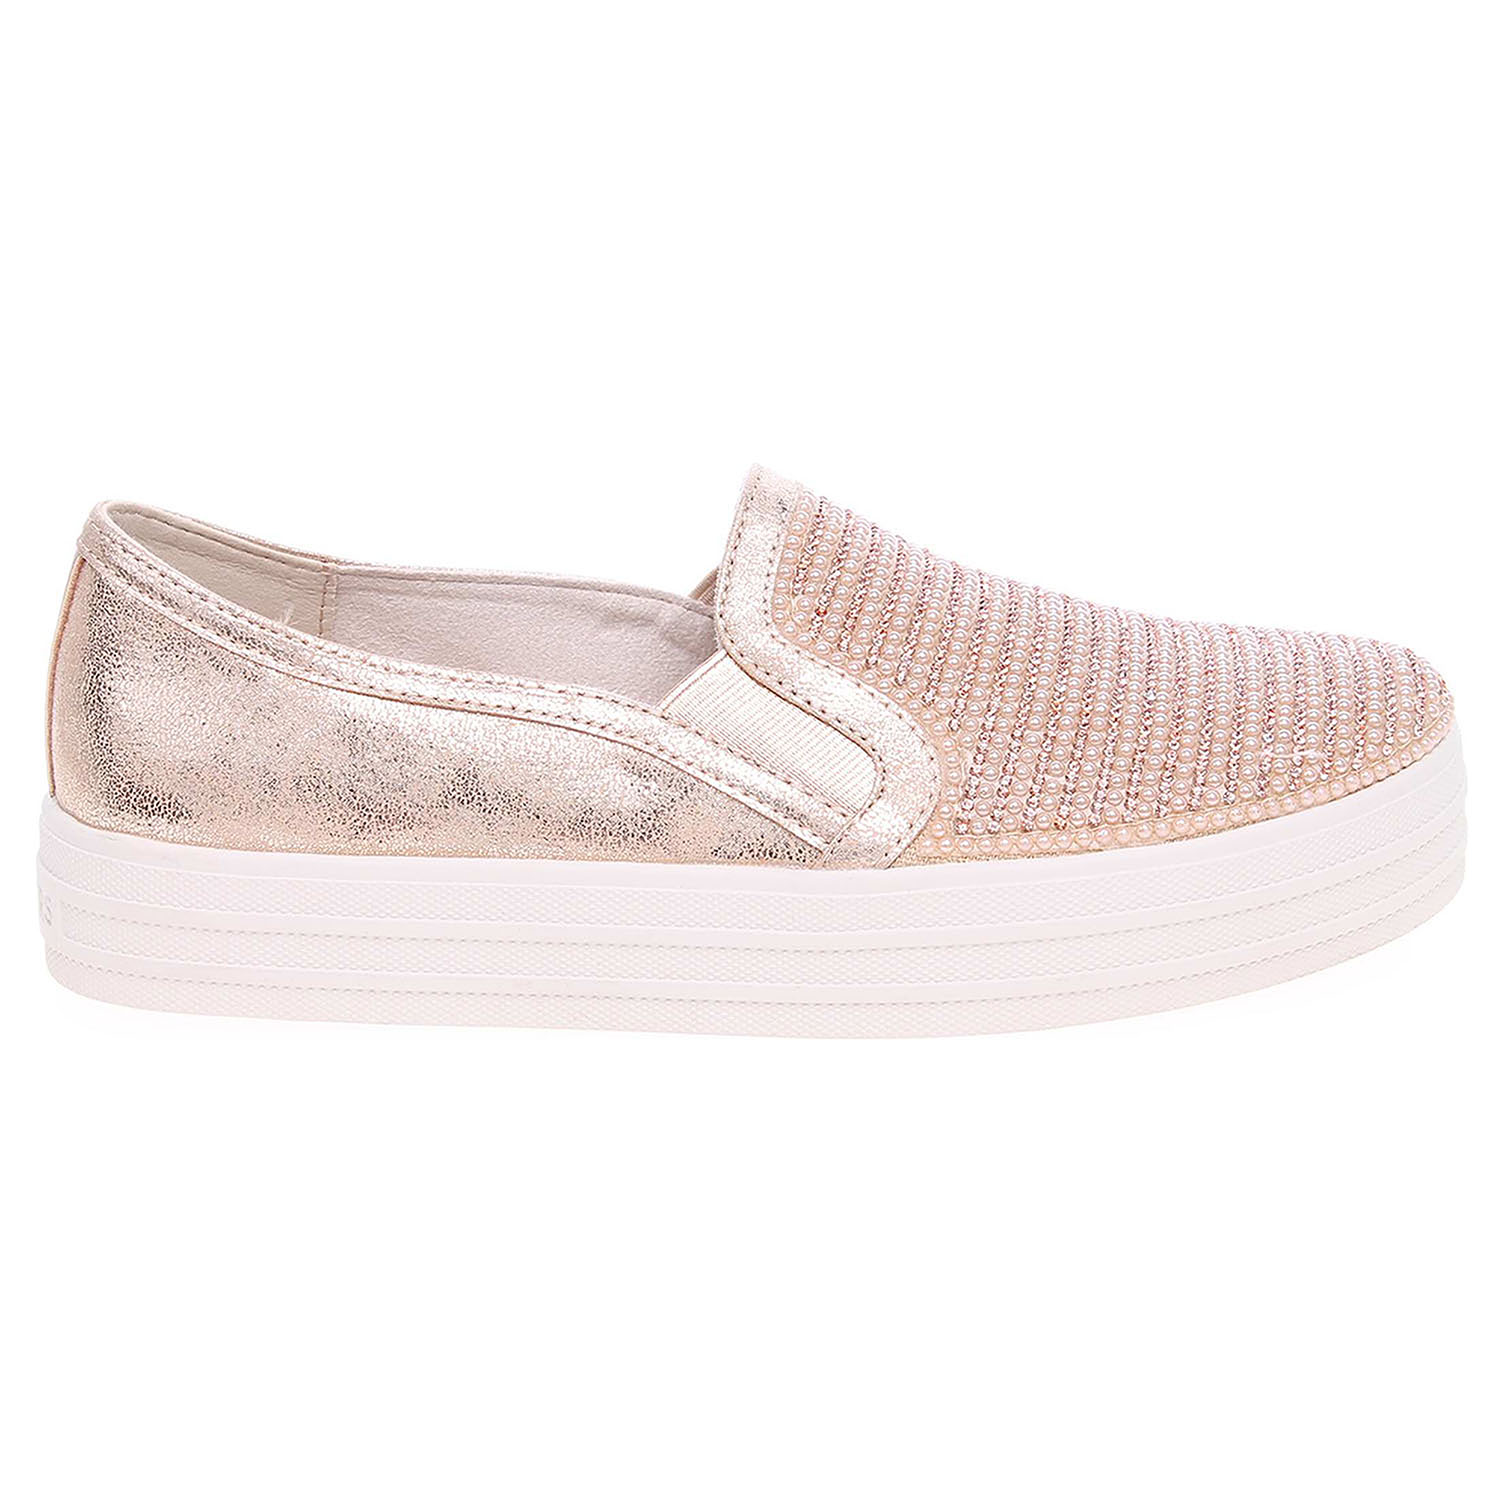 Skechers Double Up - Shiny Dancer rose gold